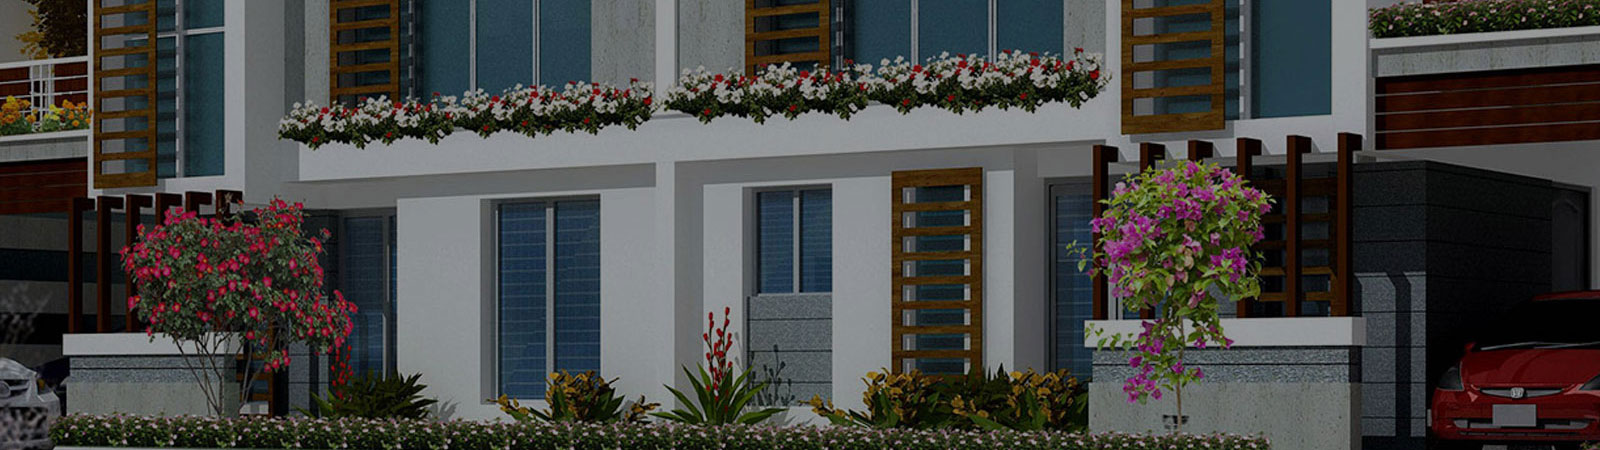 3BHK Apartments in Chennai